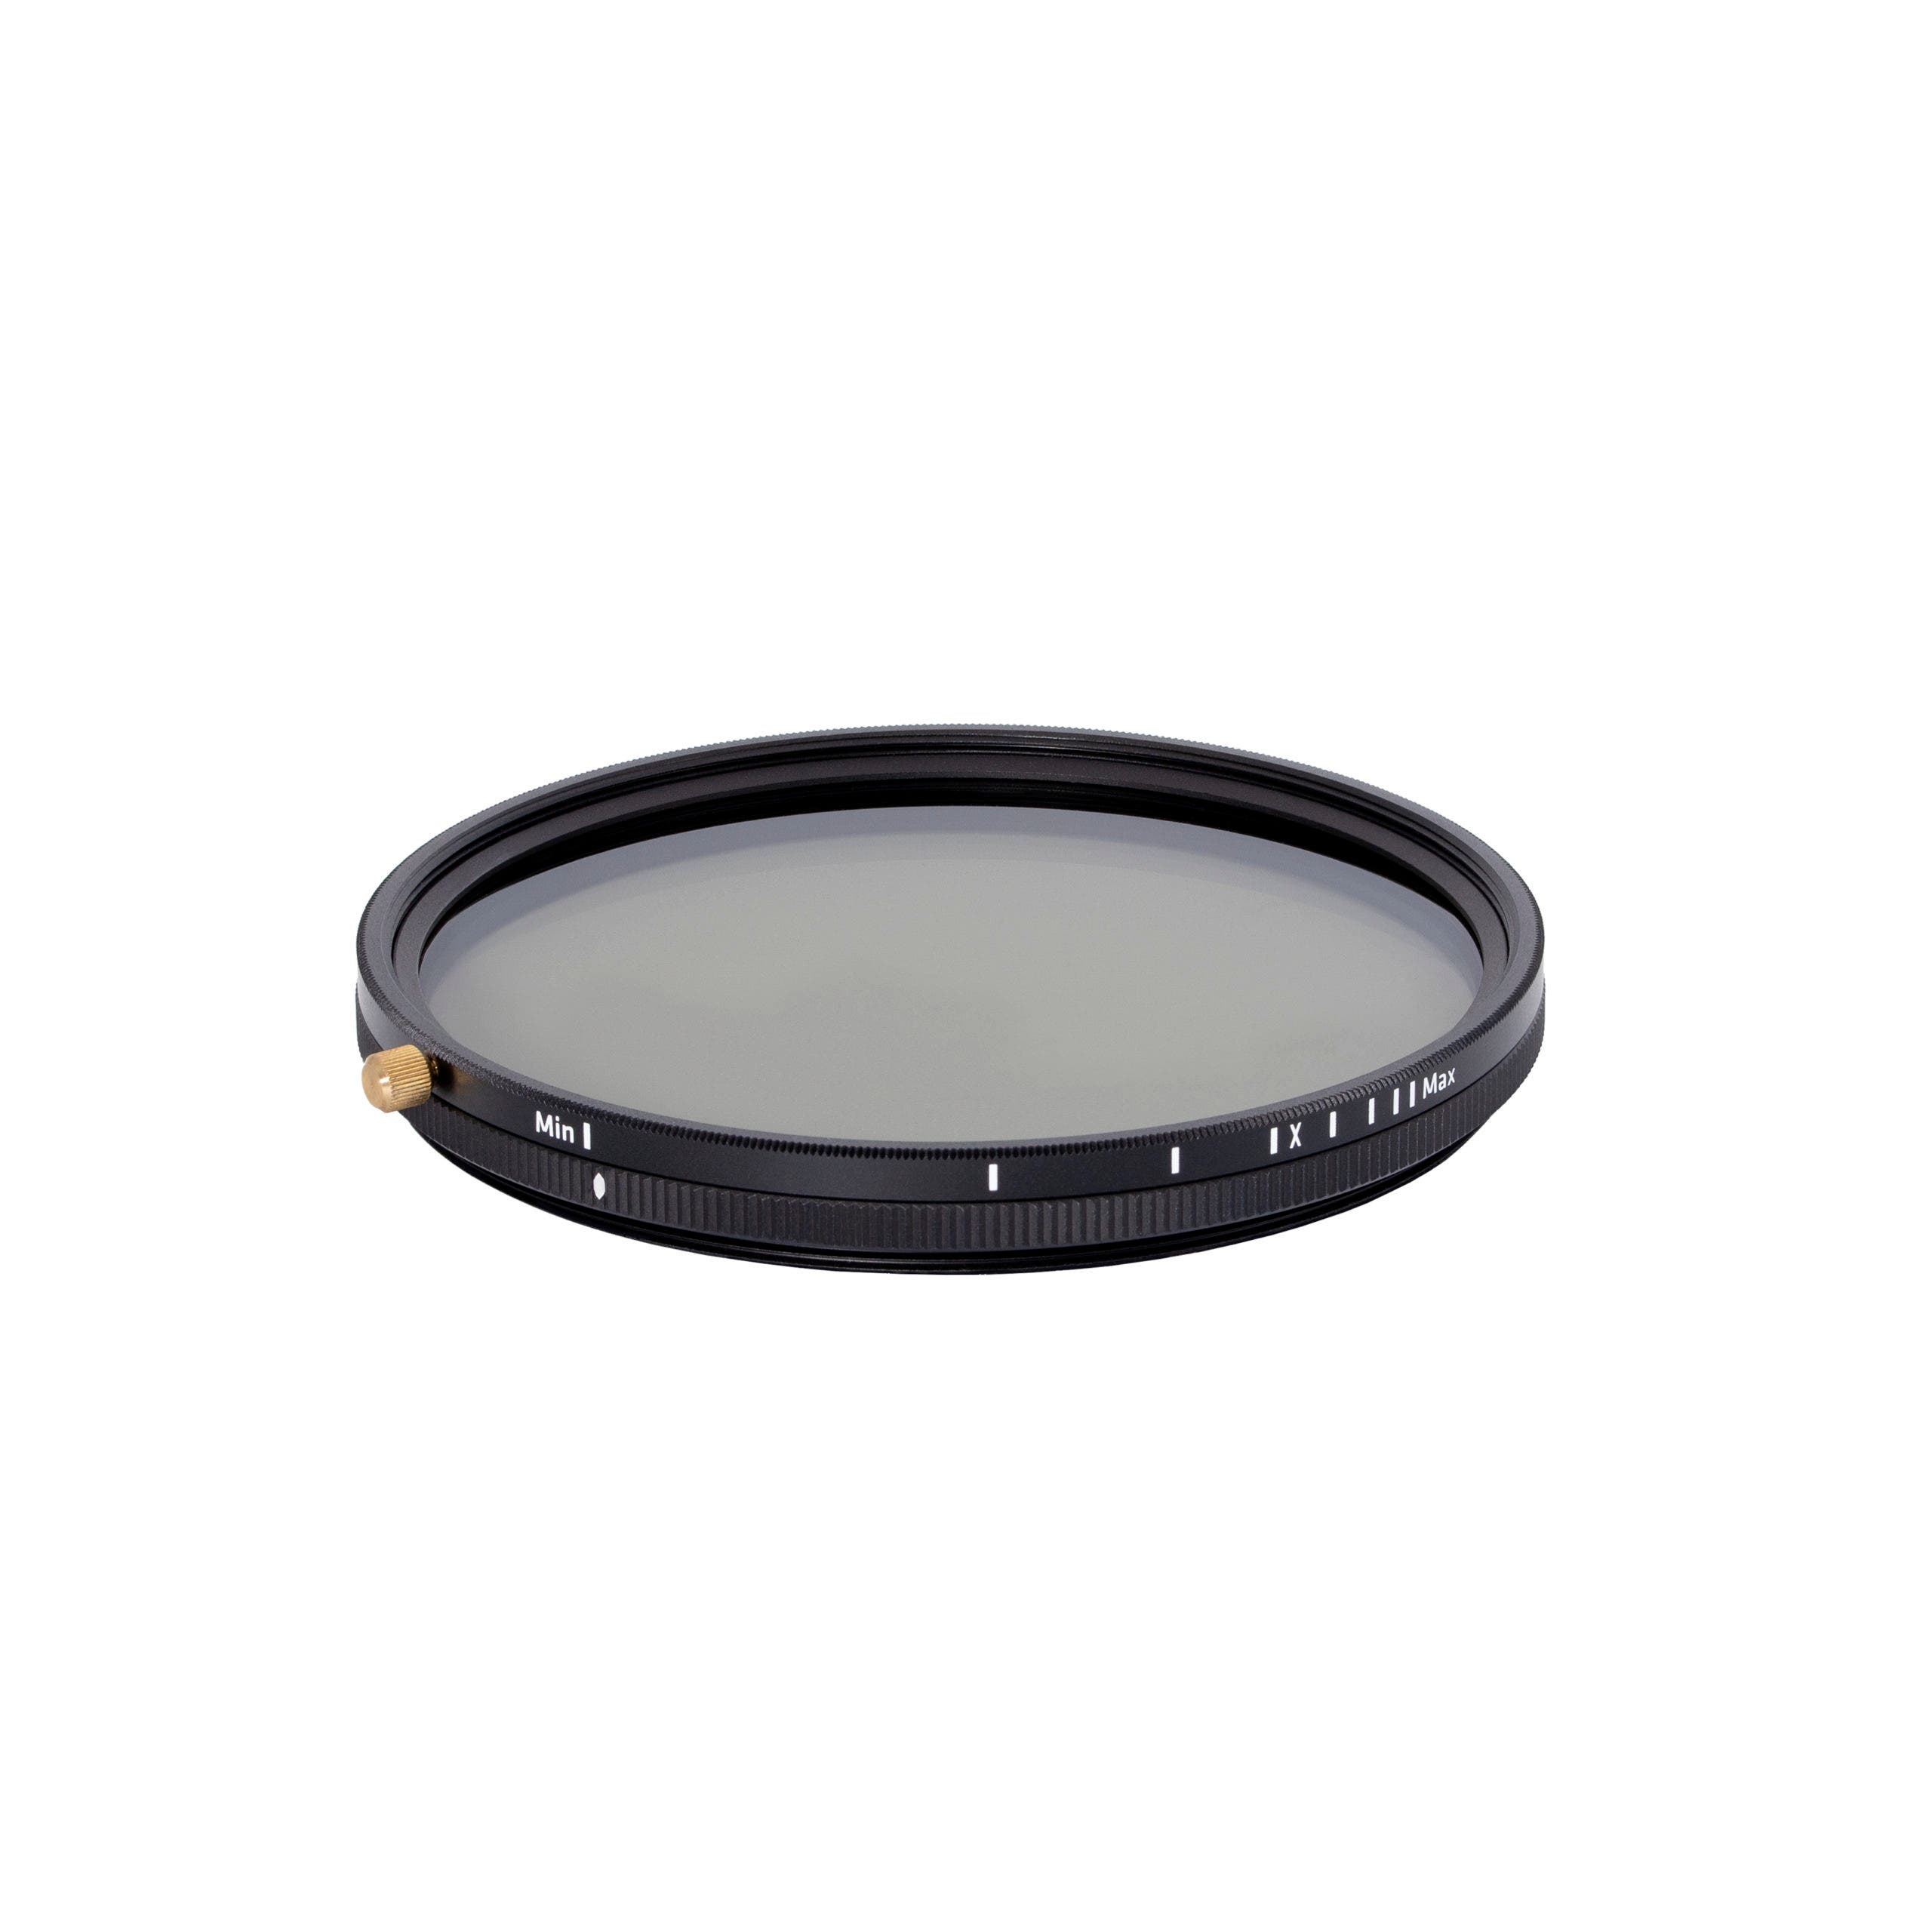 ProMaster's HGX Prime Variable ND Filters Promise Extreme Sharpness